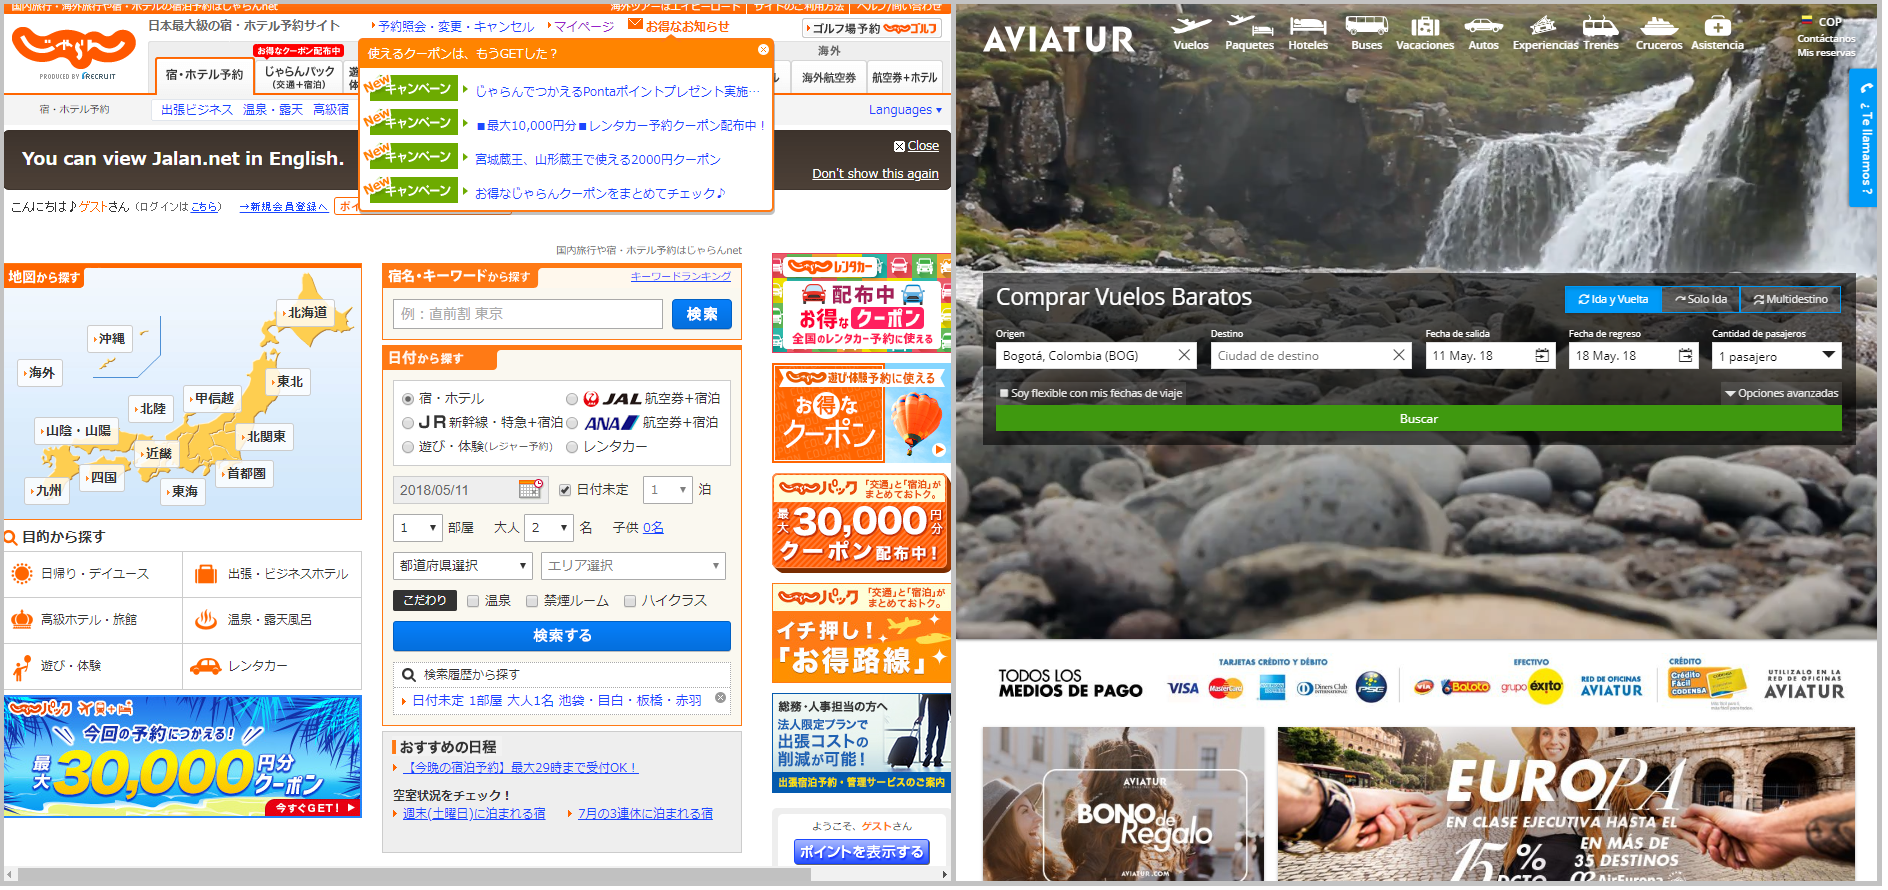 Picture shows an image of the travel company websites Jalan from Japan and Aviatur from Colombia